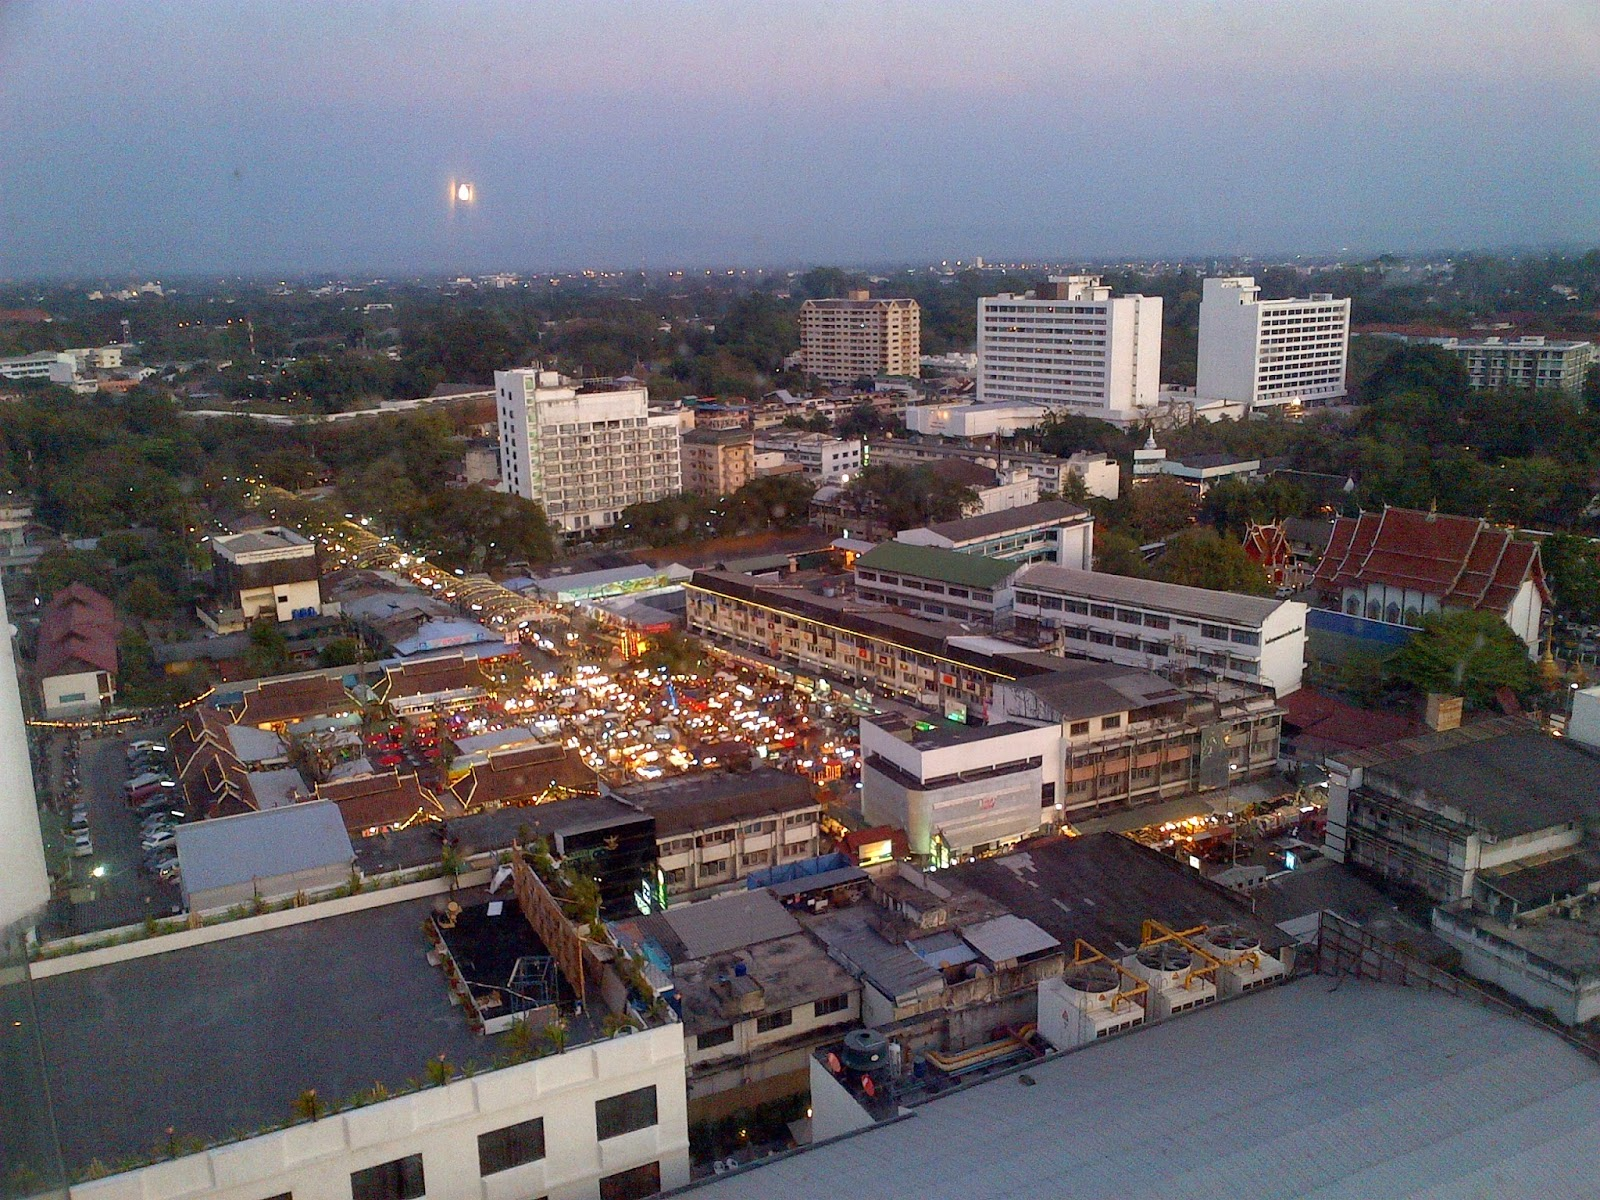 pasar+malam+from+hotel+view.jpg